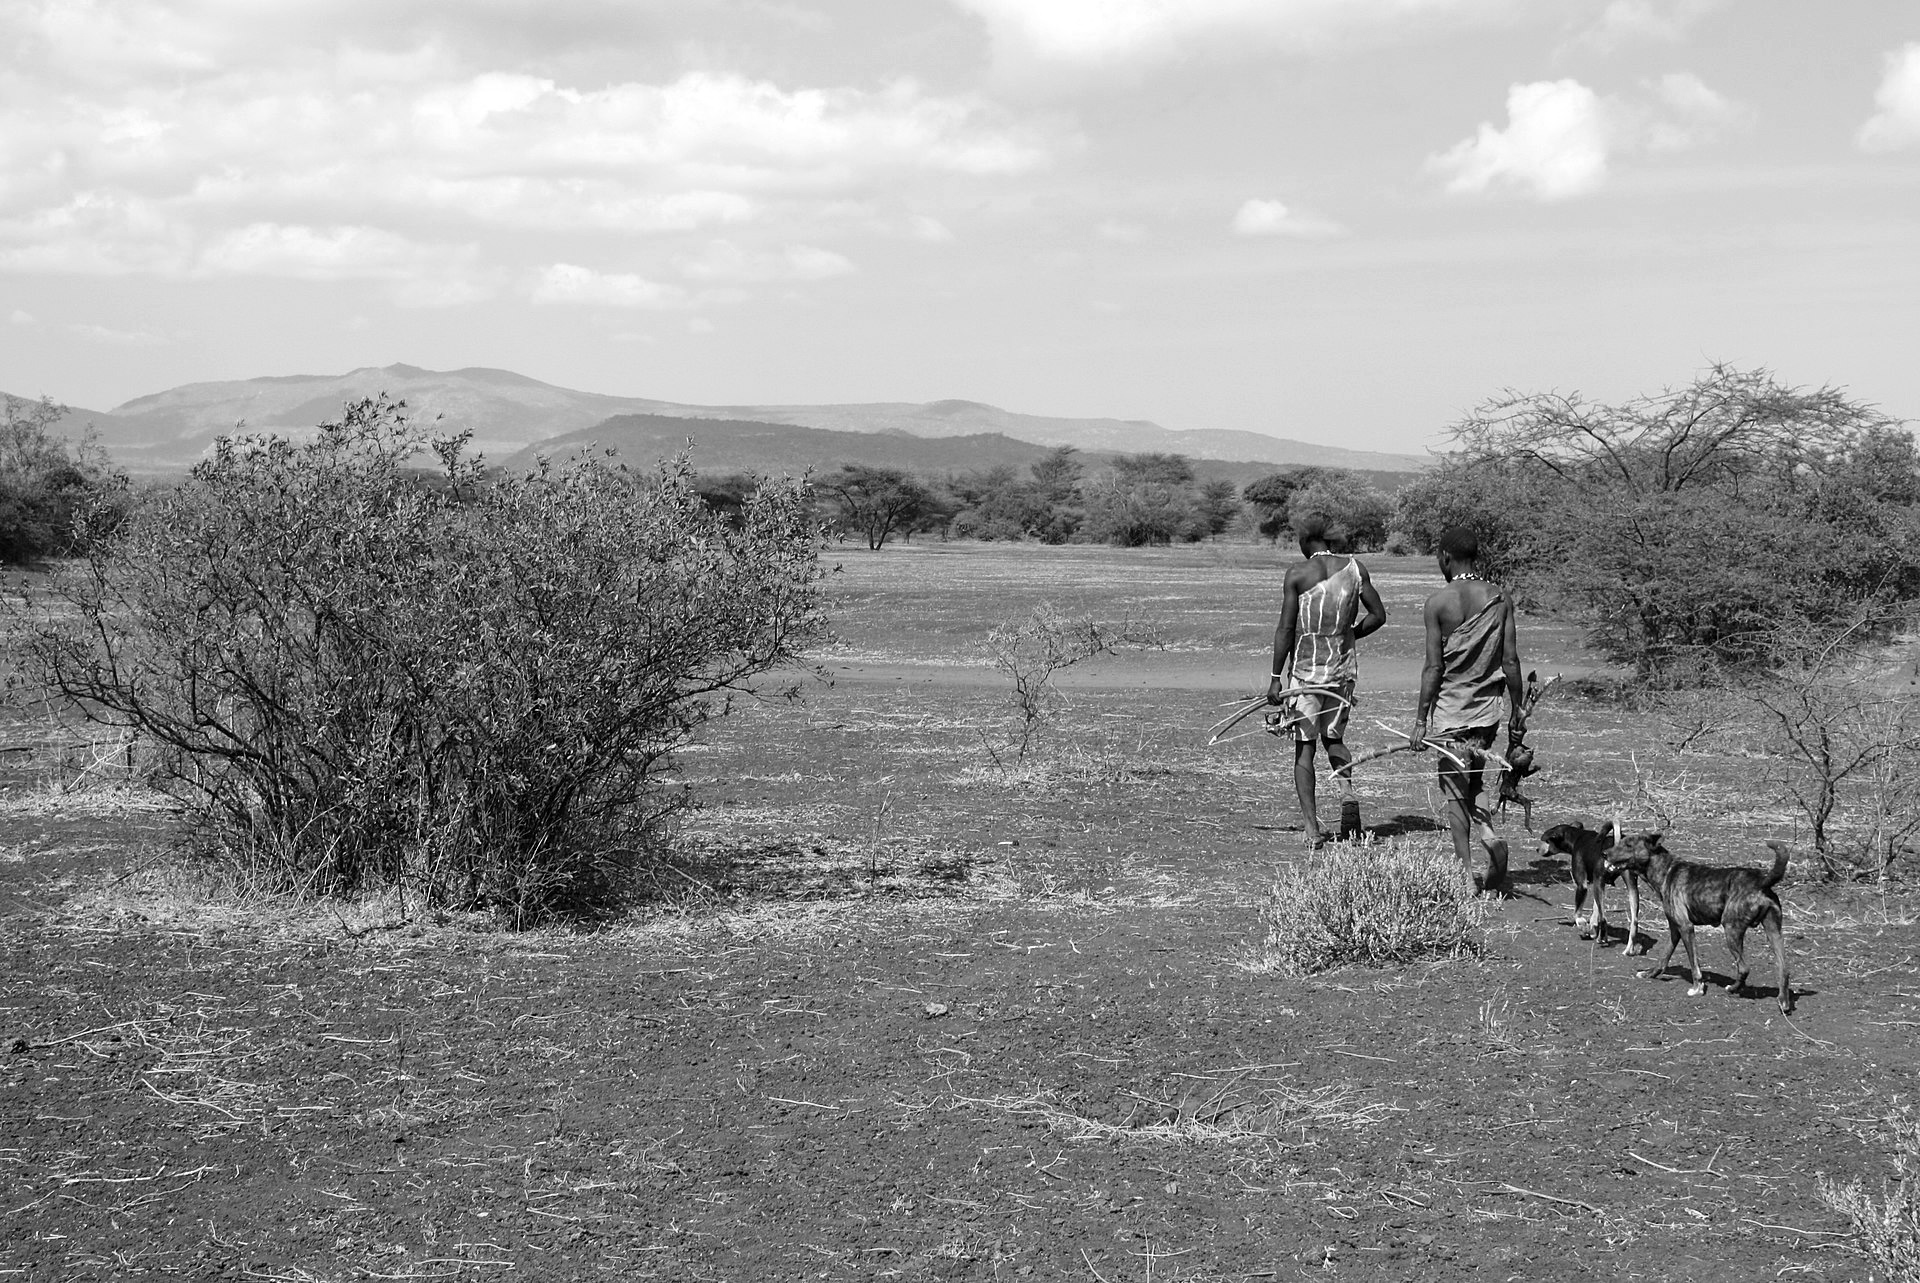 Two Hadza tribe men coming back home from hunting